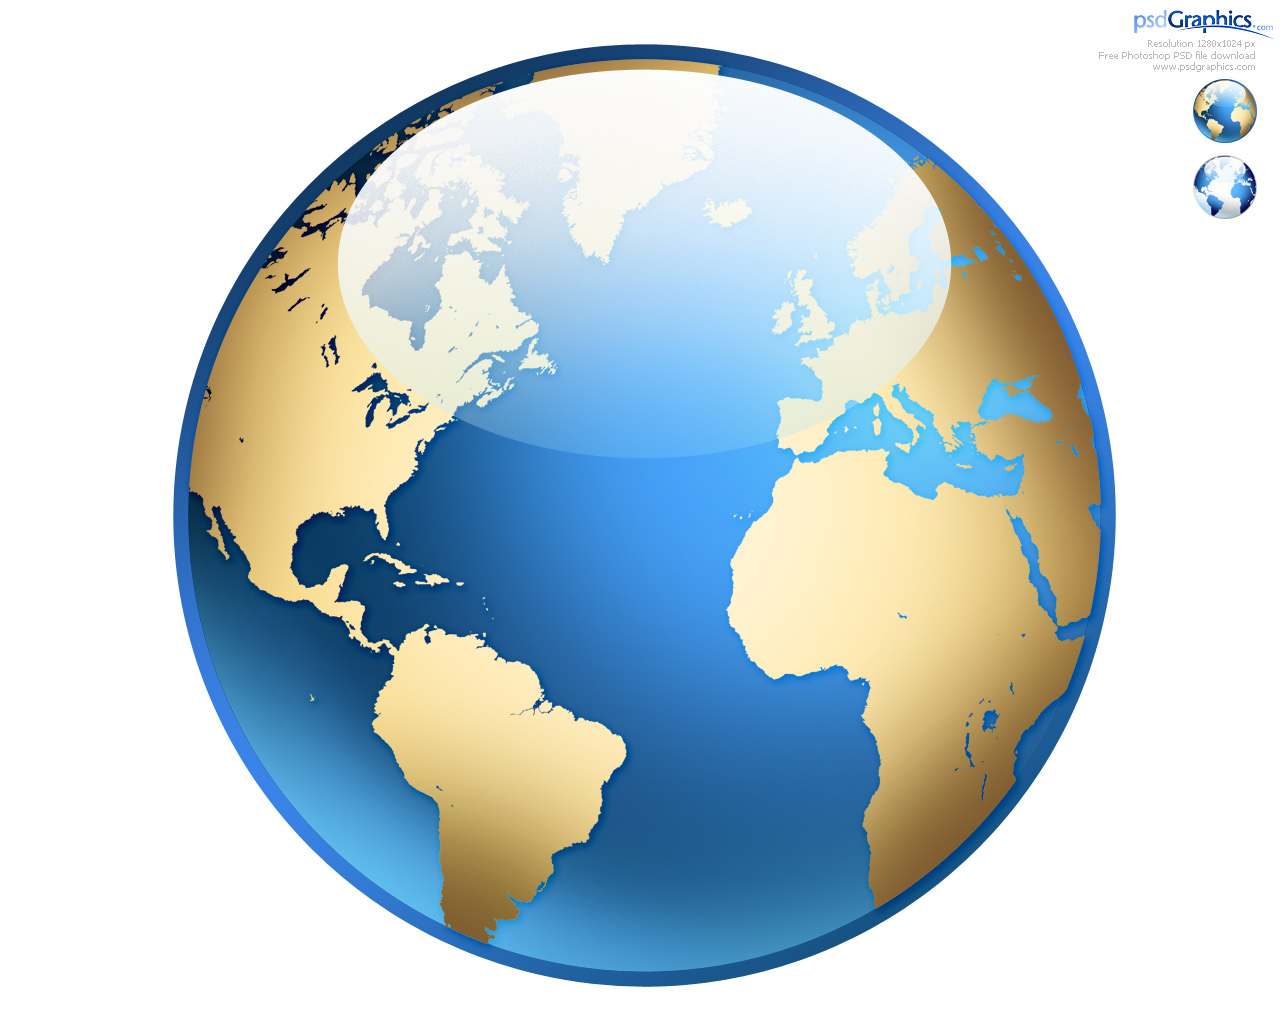 Photoshop world globe icon psdgraphics globe icon gumiabroncs Image collections